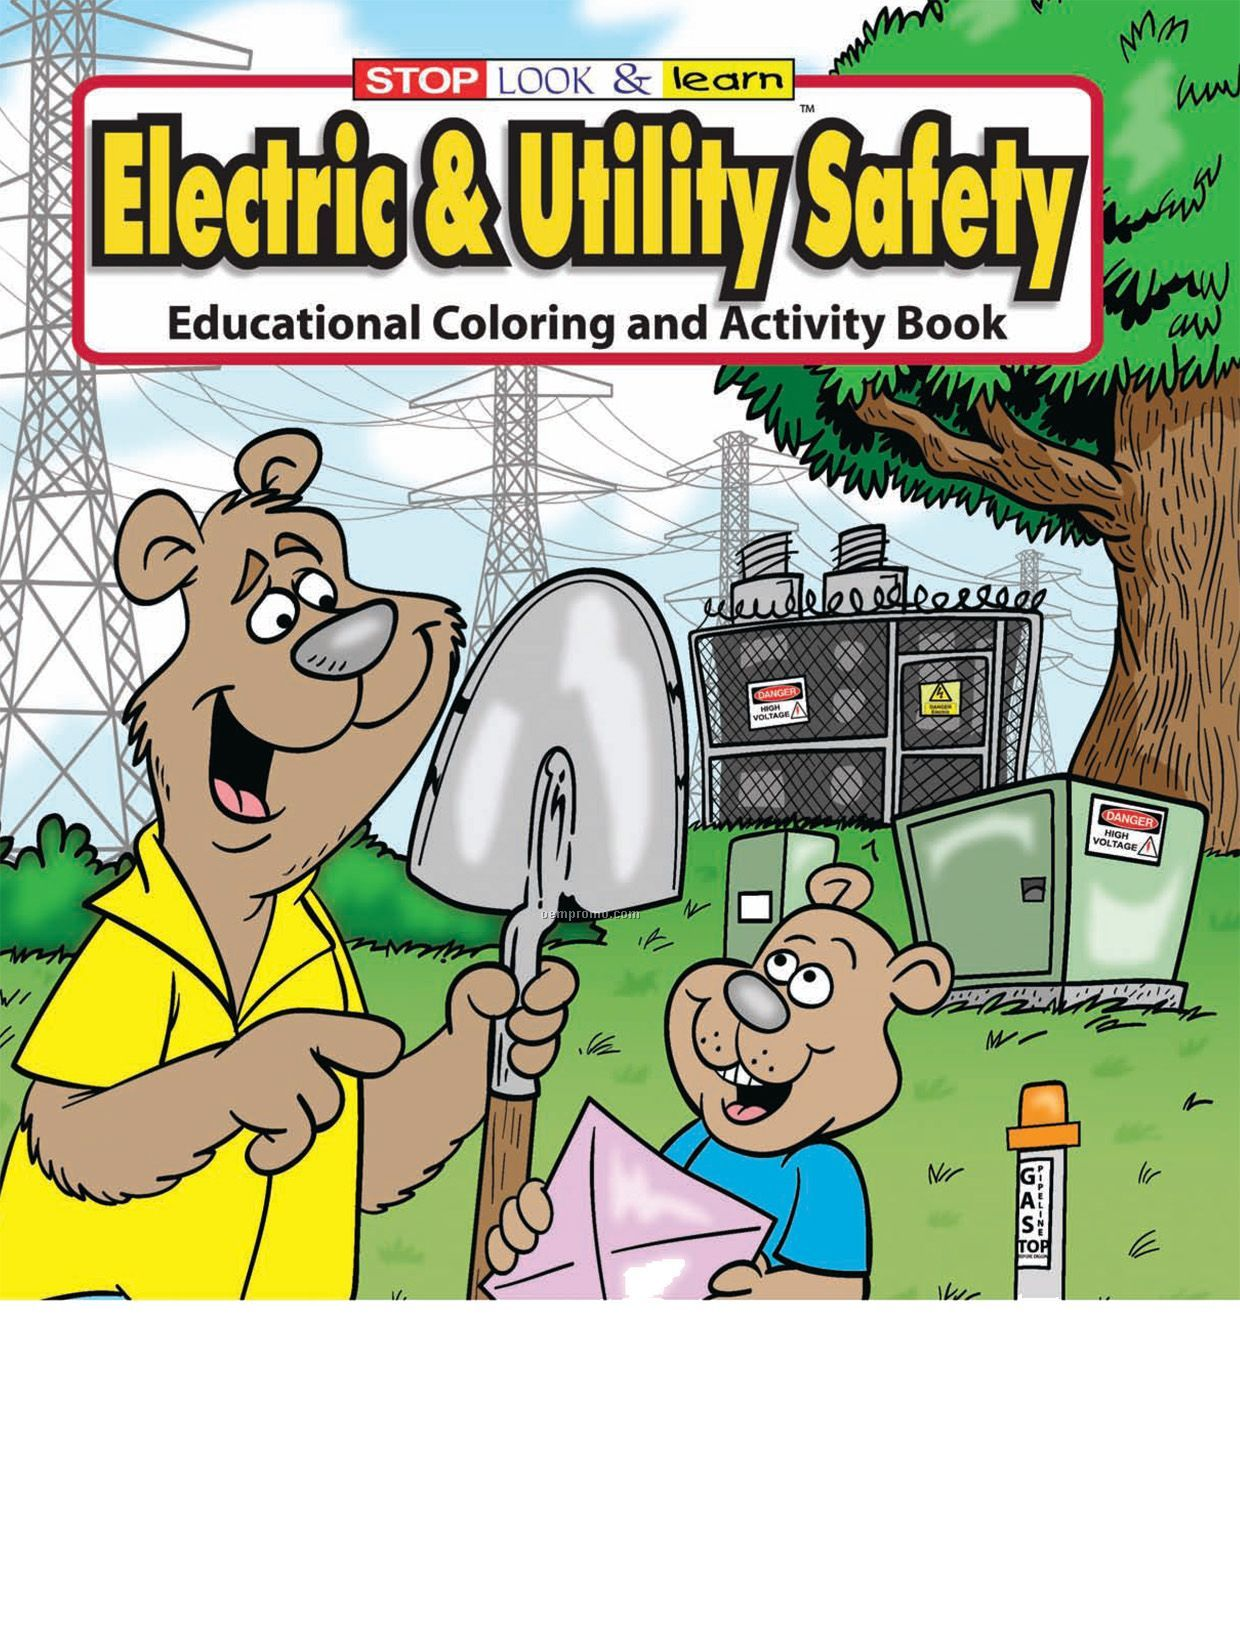 Electric & Utility Safety Coloring Book